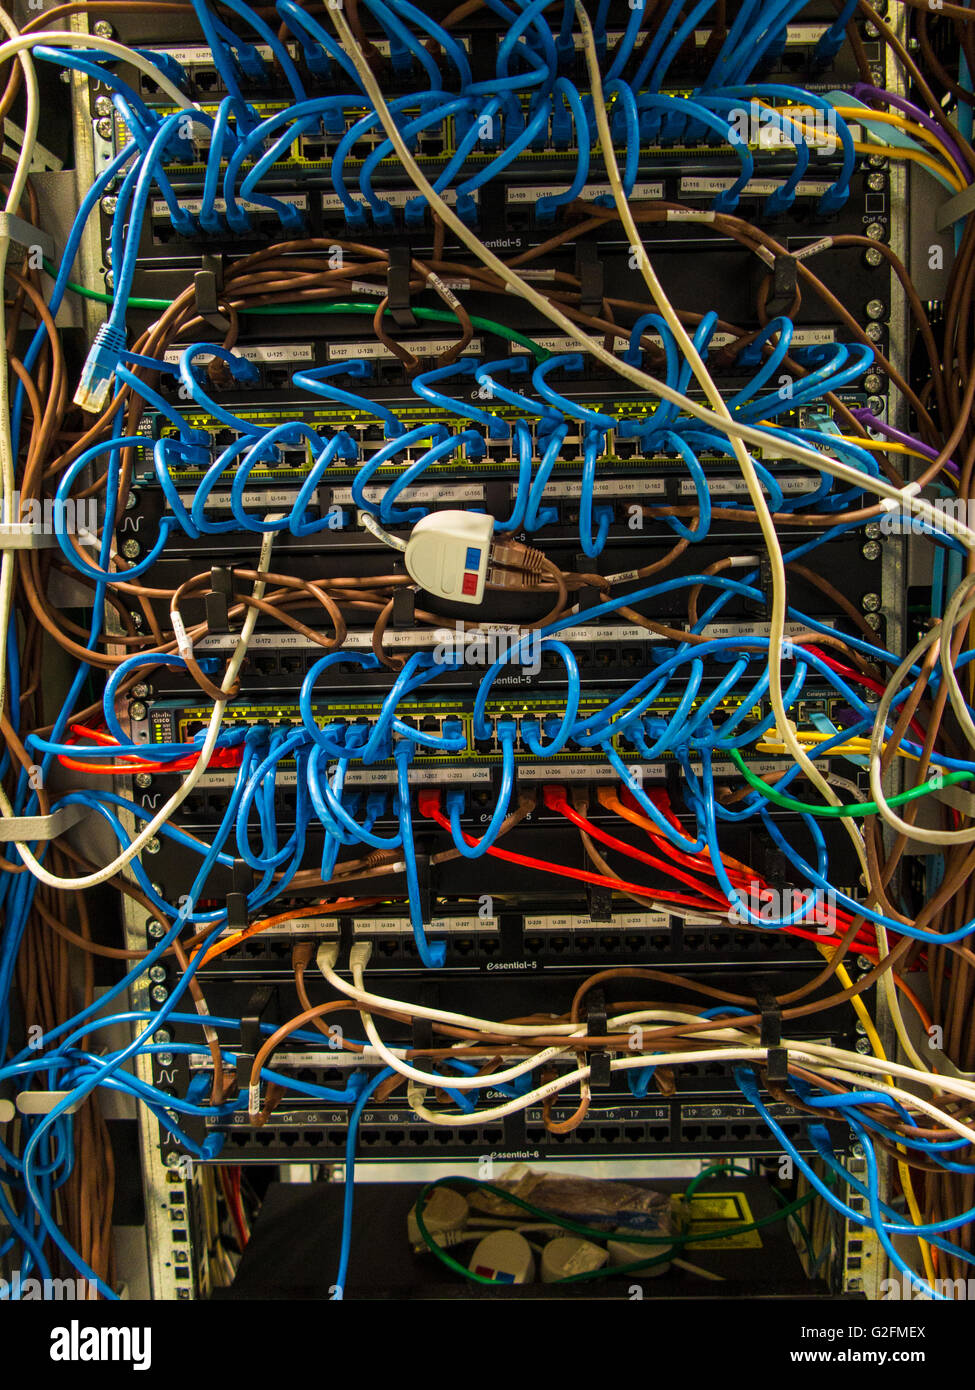 medium resolution of complex wiring in computer server air conditioned machine room